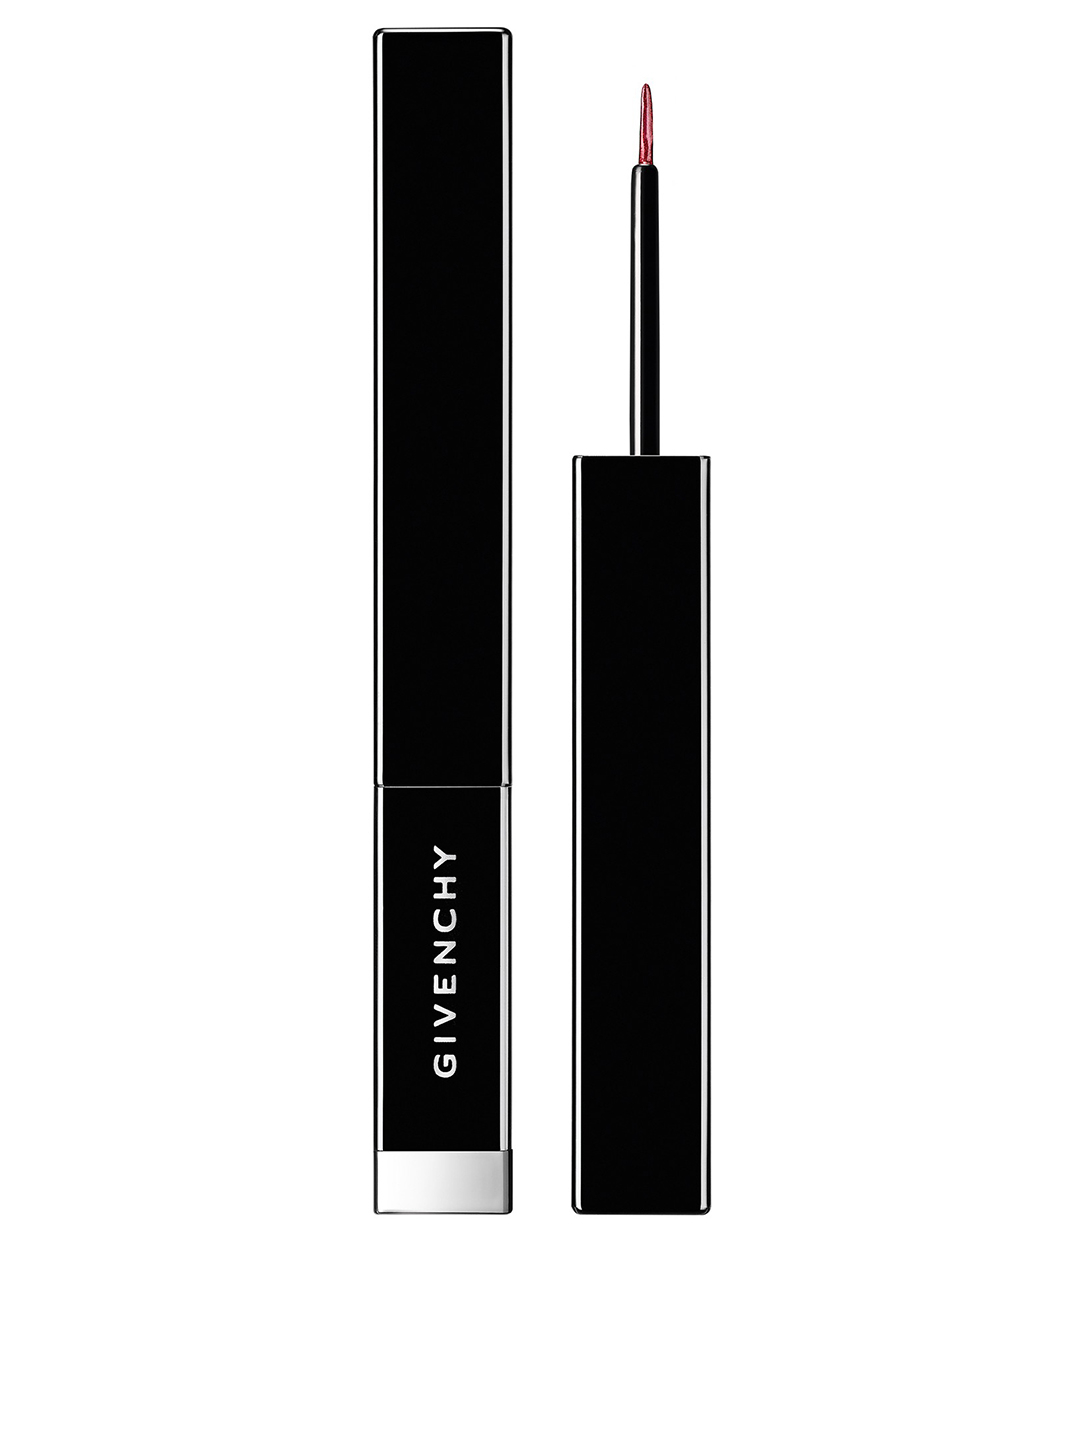 GIVENCHY Liner Vinyl N°7 Brush Tip Eyeliner - Limited Edition Beauty Red